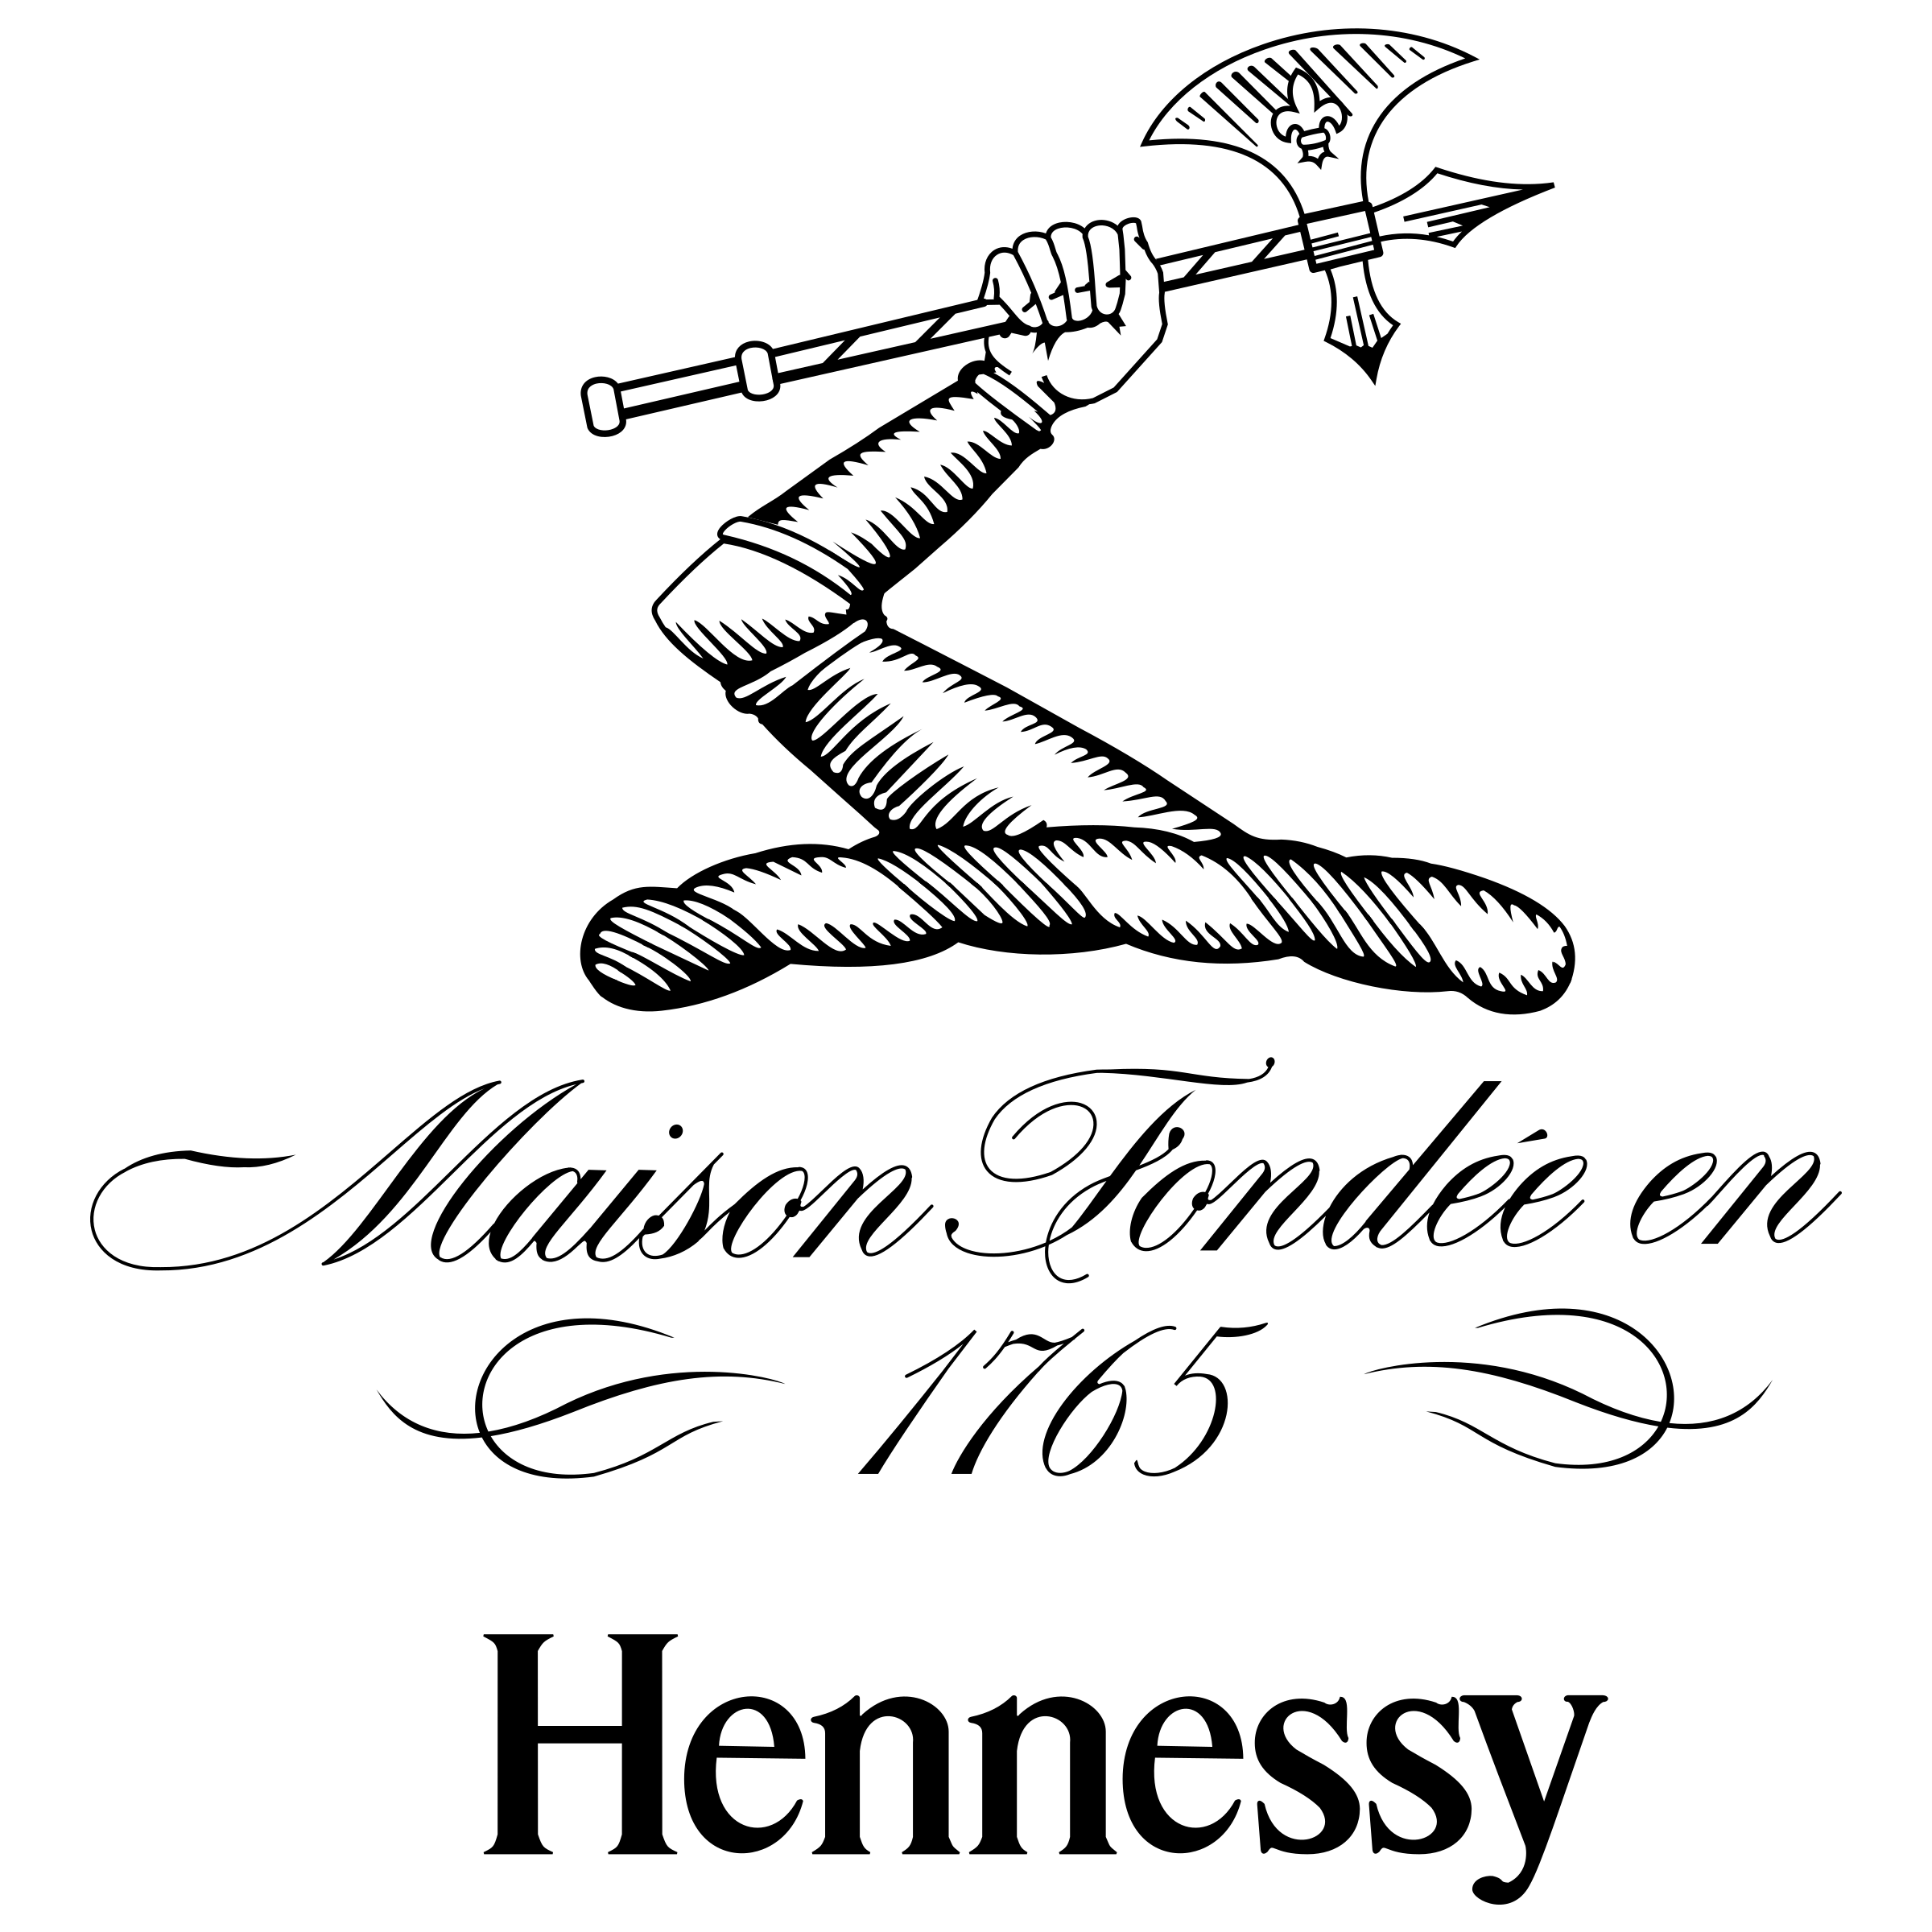 Hennessy logo png